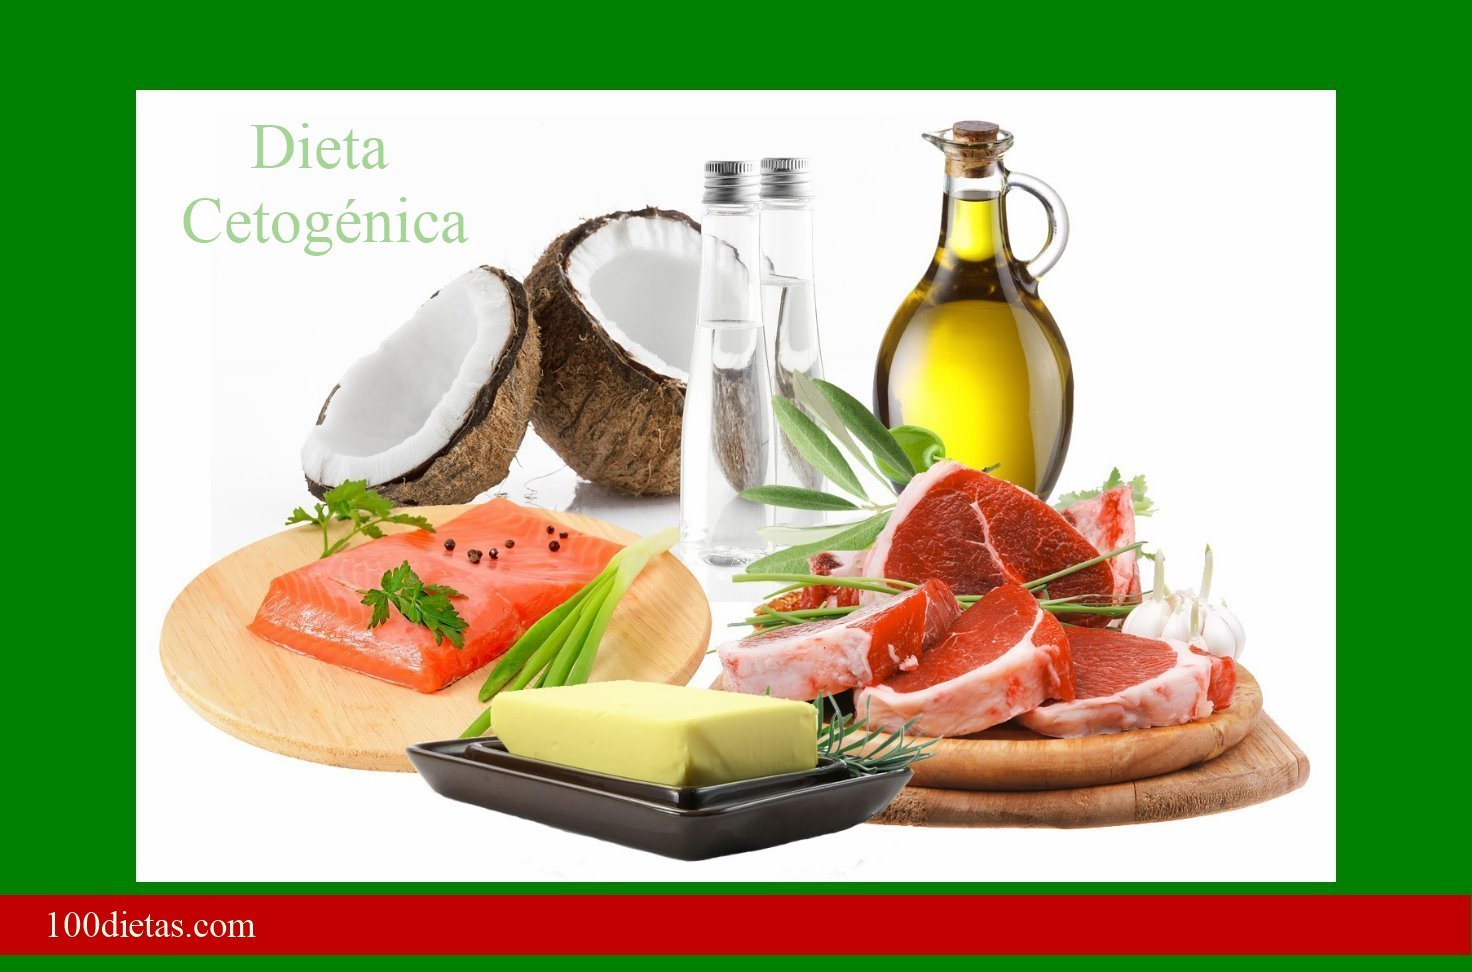 DIETA-CETOGENICA-1.jpg